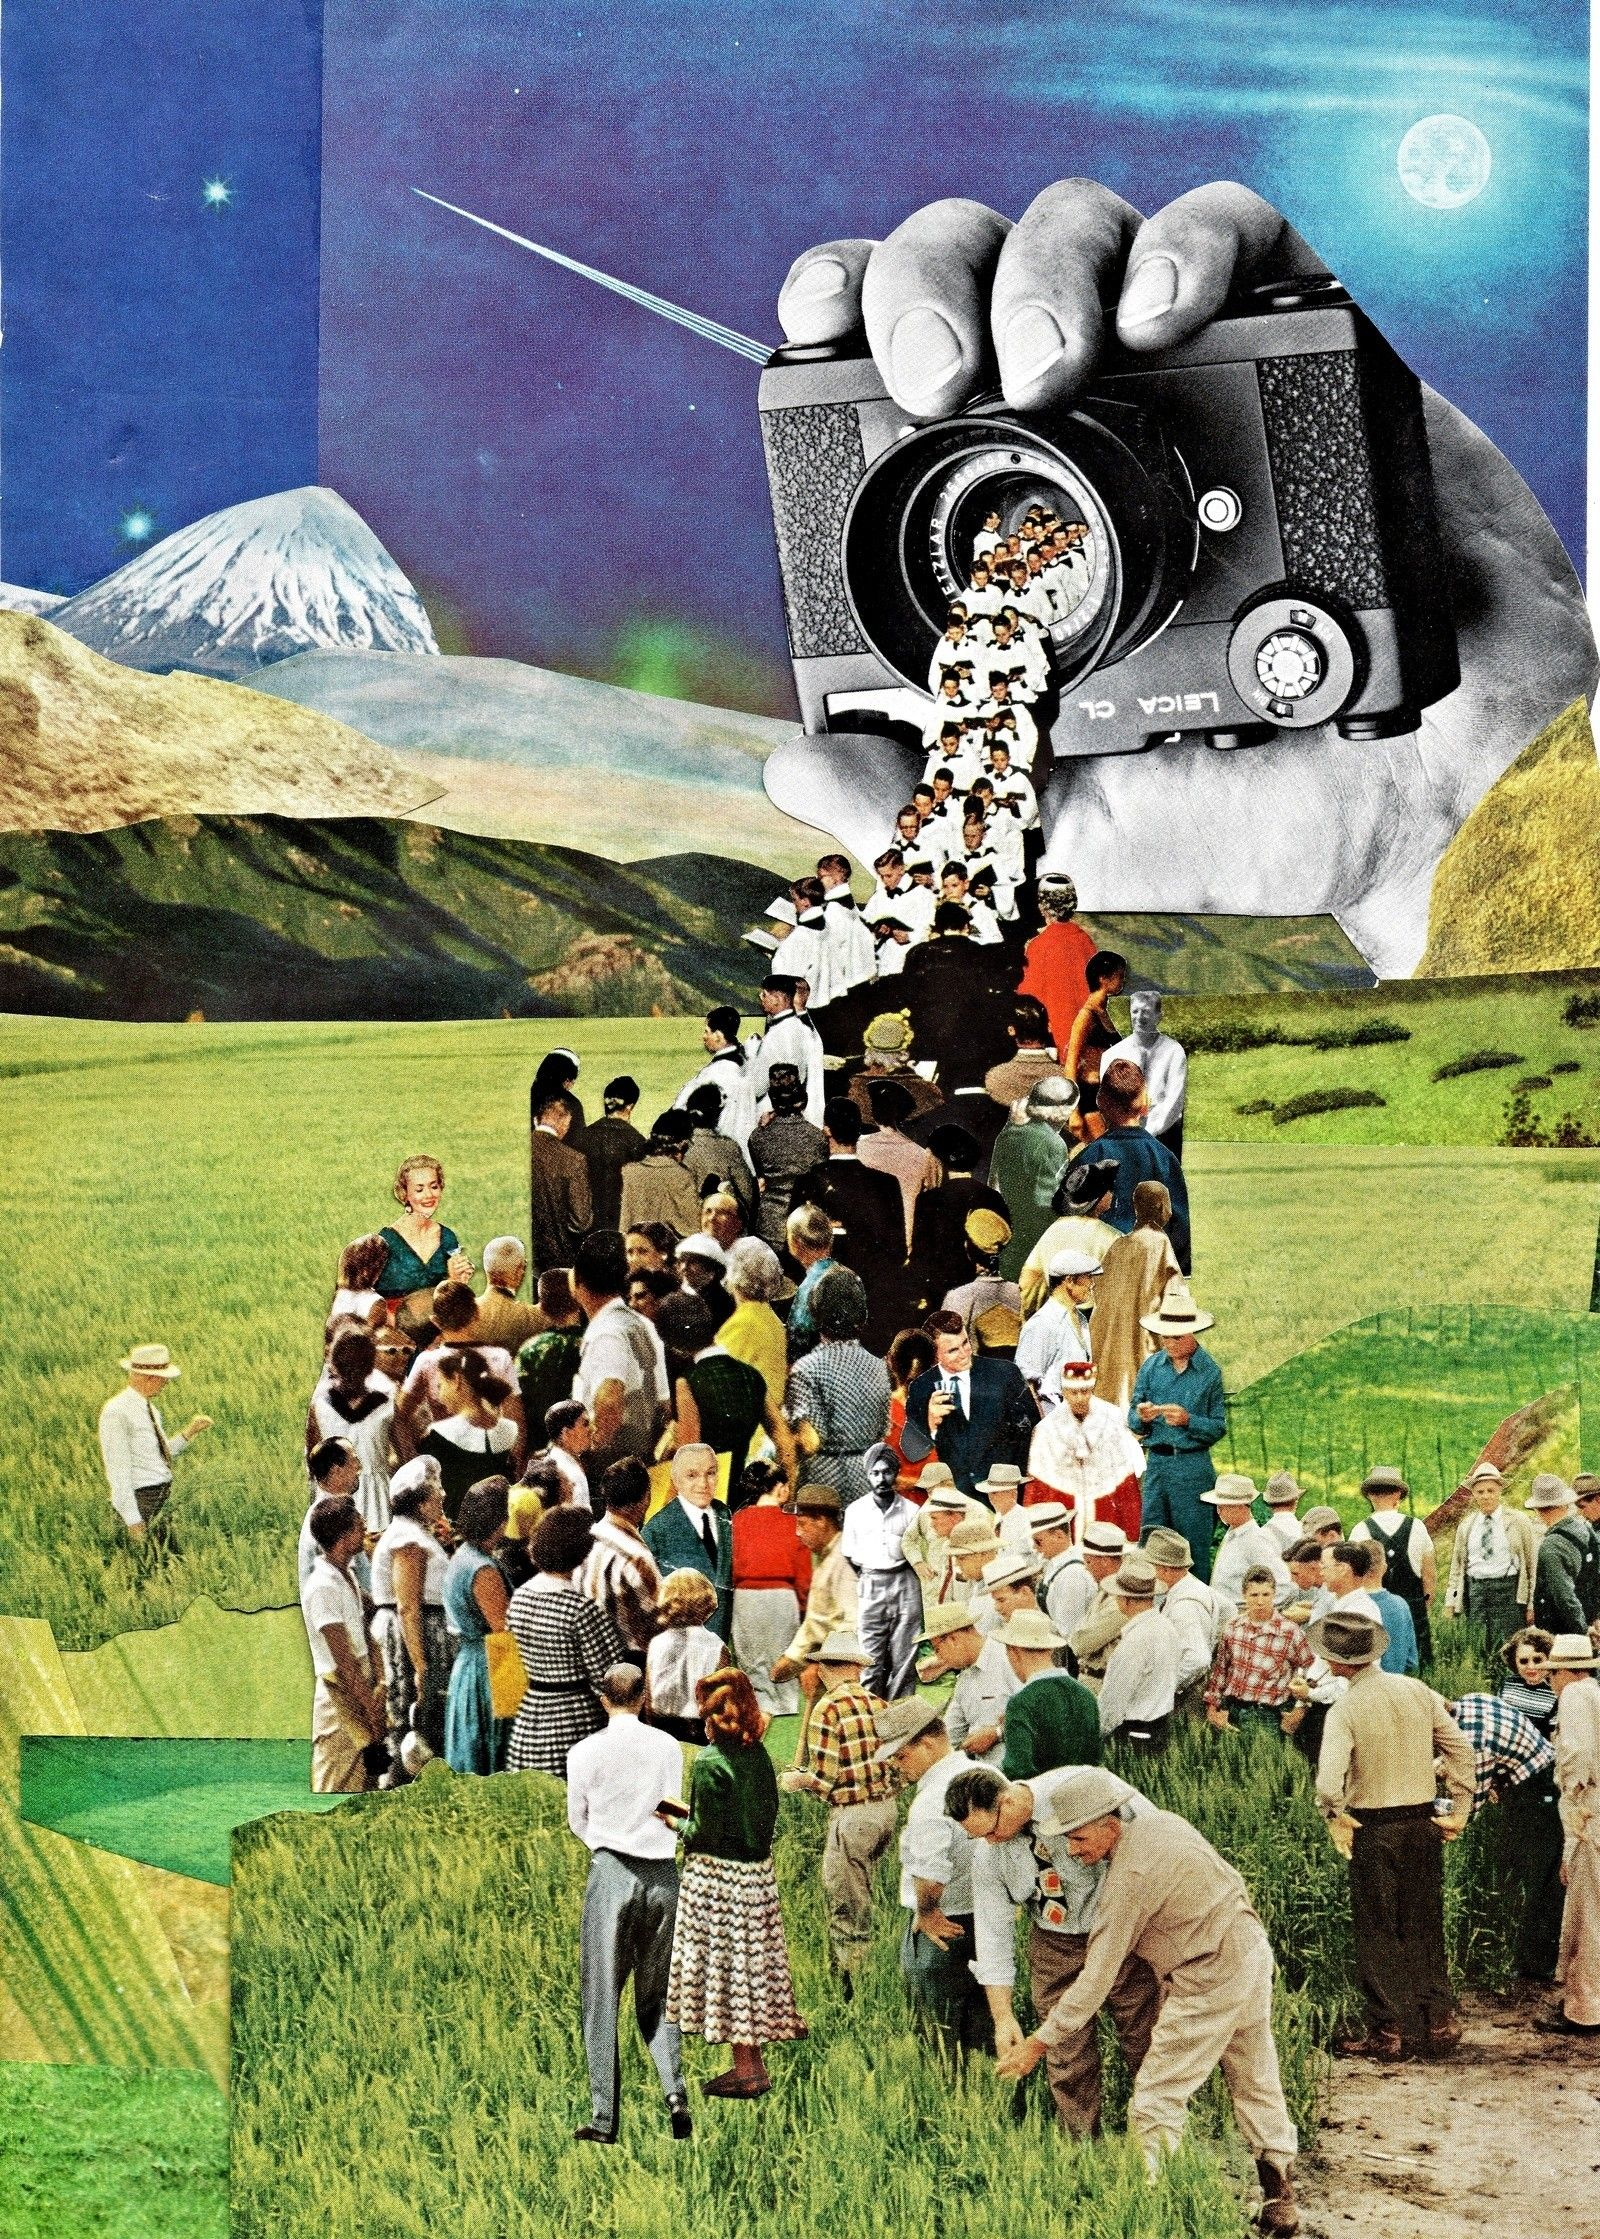 Retro-Futuristic Magazine Collage Art by Ben Giles | Fine Art ...